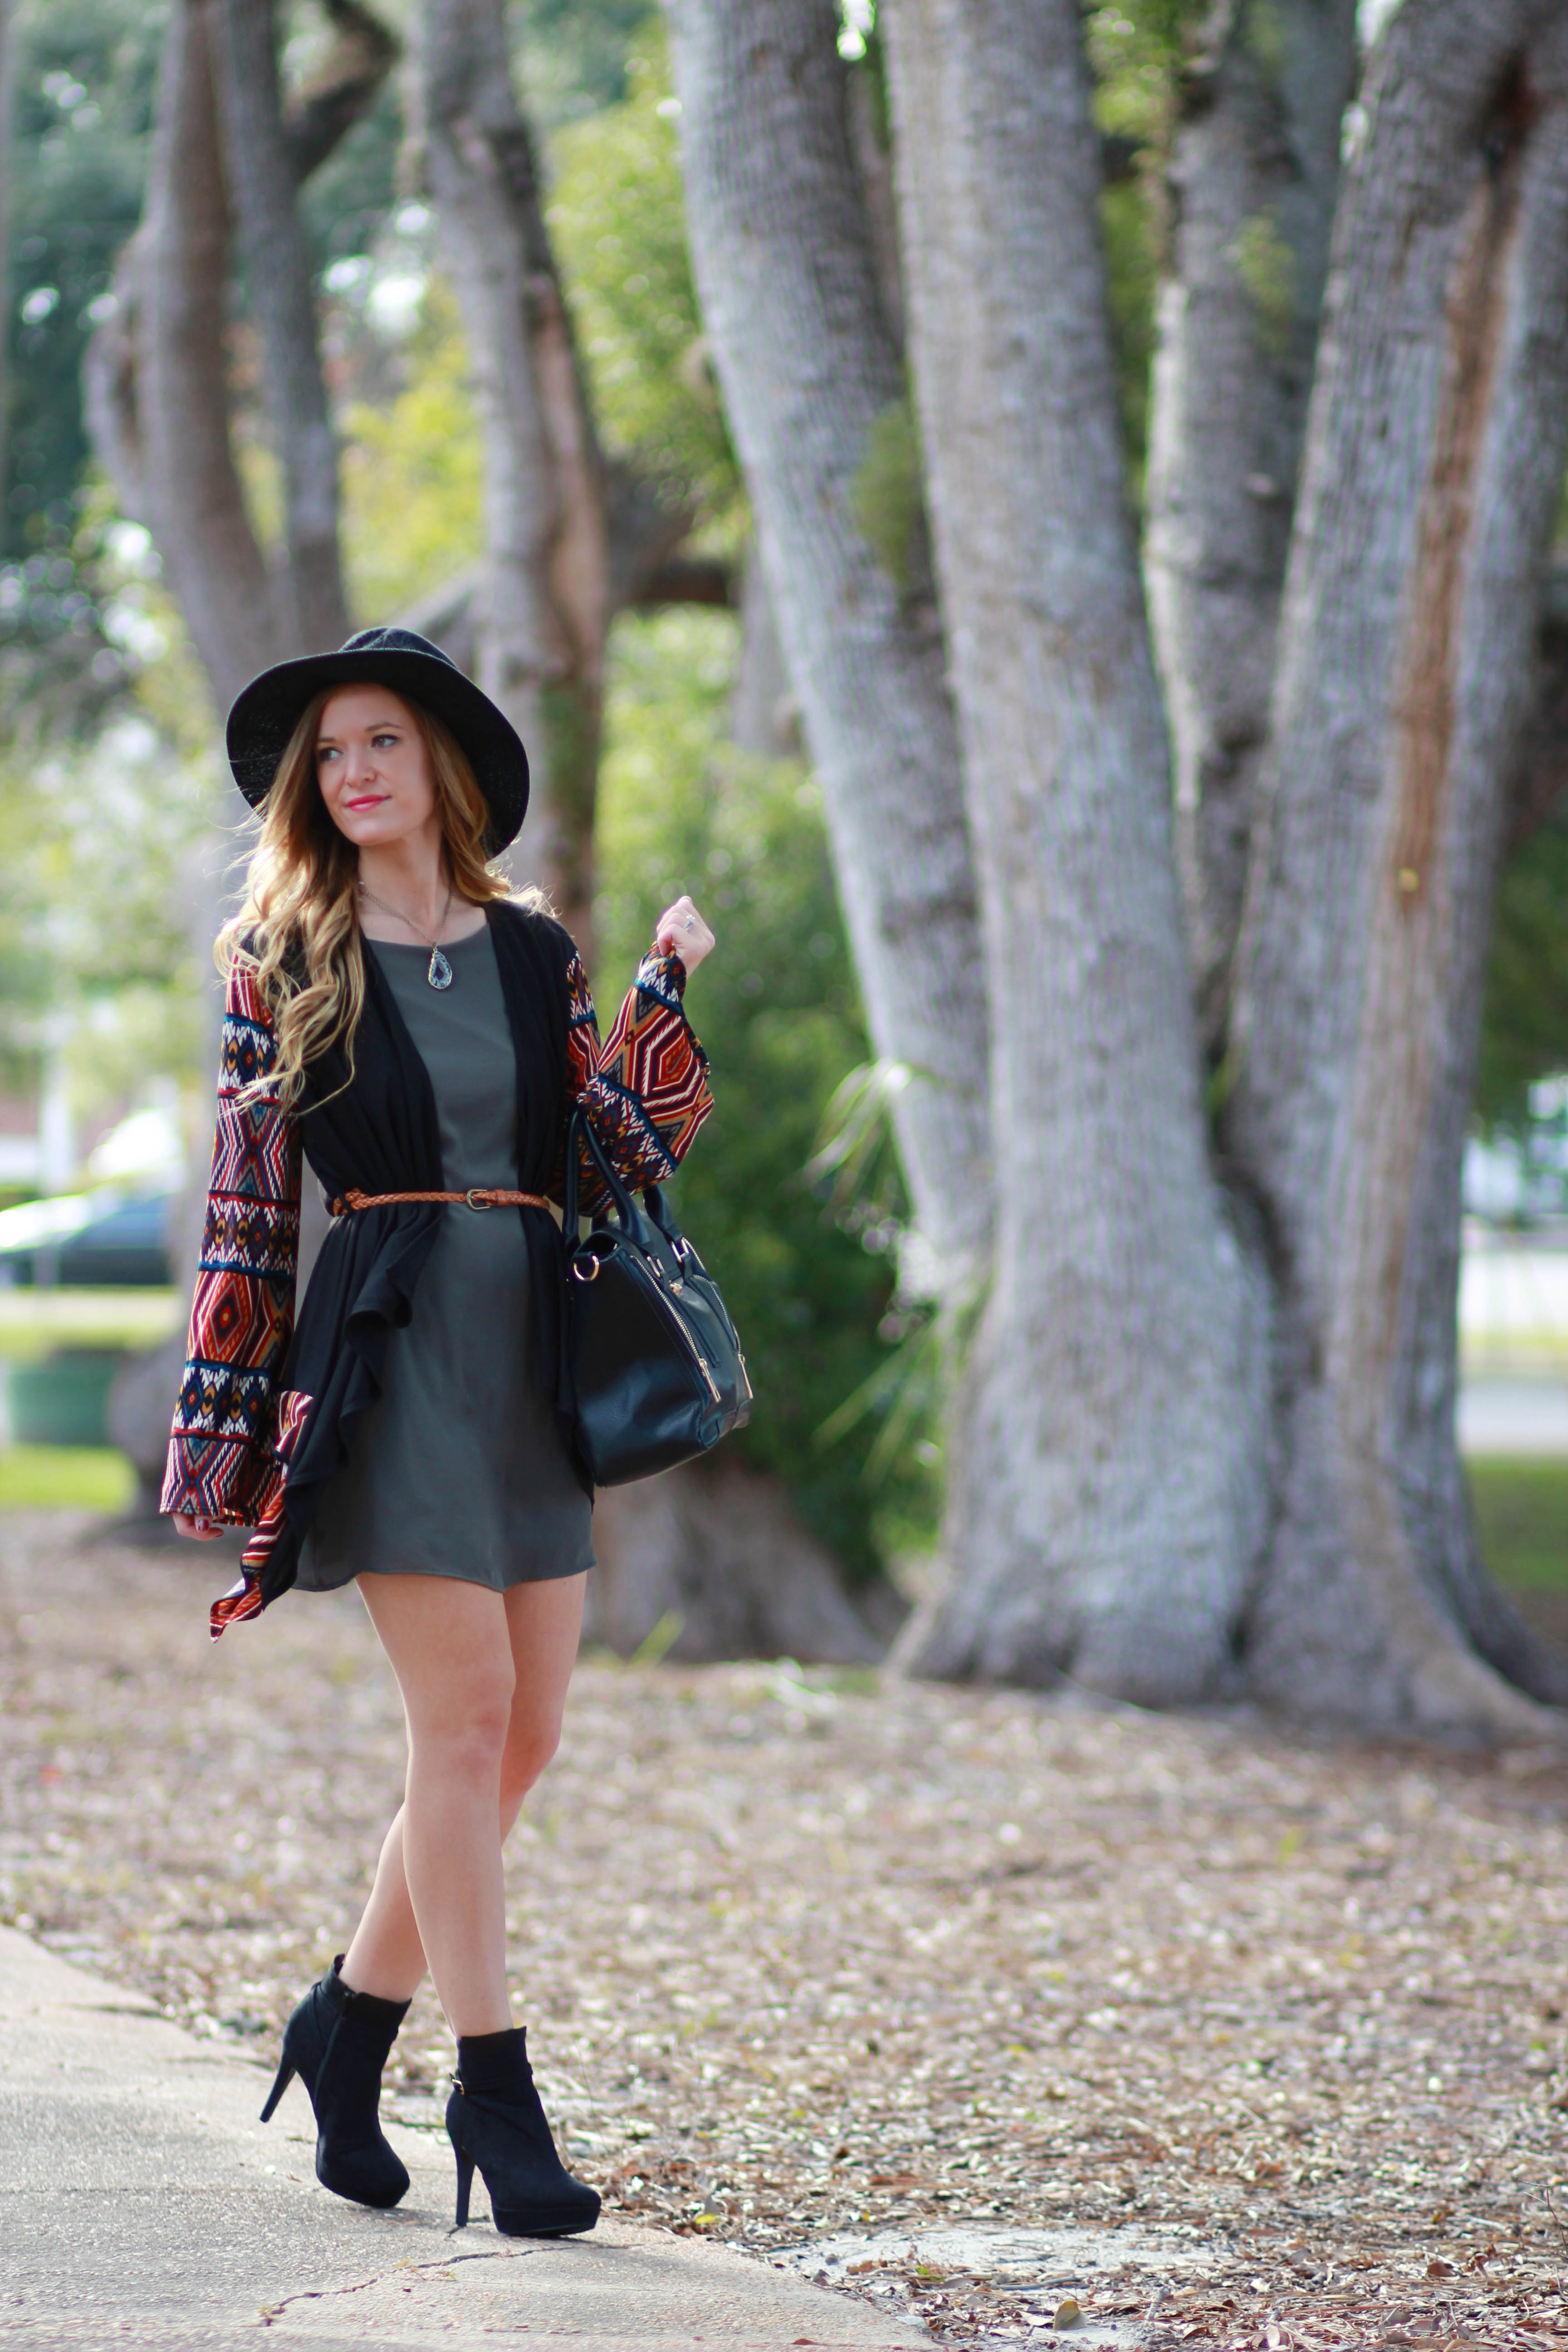 florida/ orlando fashion blogger styles copper peacock boutique aztec cardigan and green shift dress with free people hat and h&m booties for a casual fall outfit